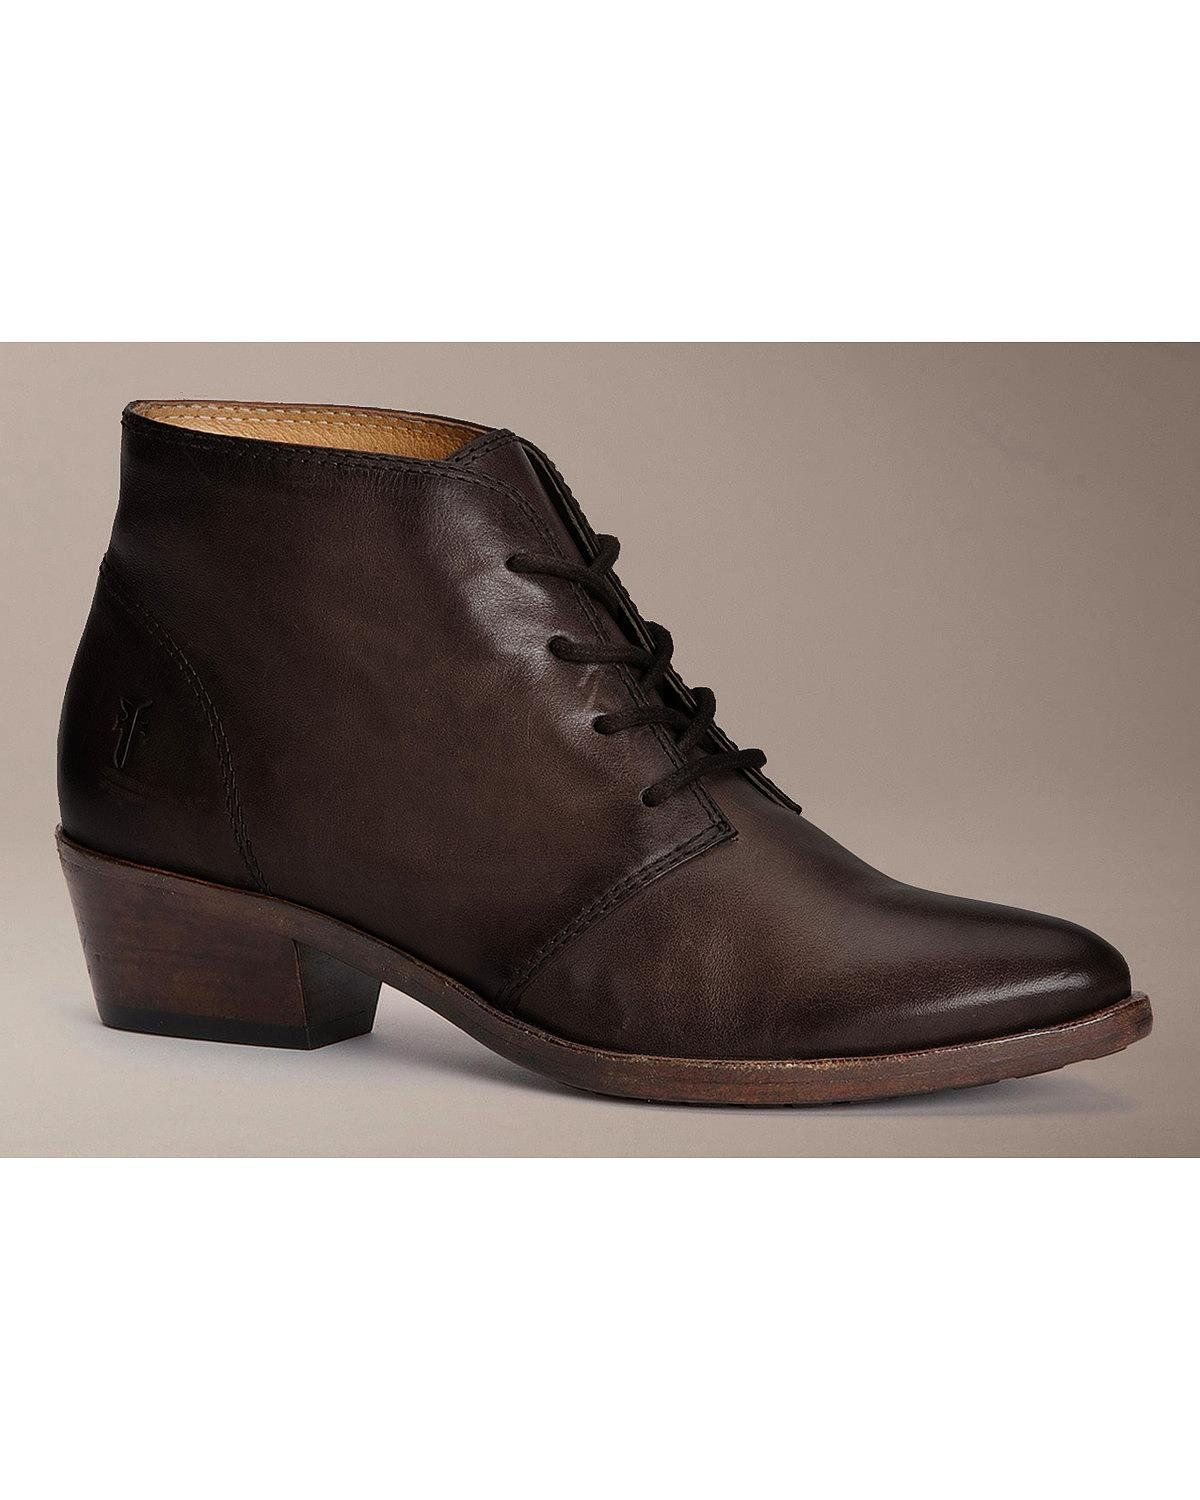 FRYE Women's Ruby Chukka Boot, Charcoal, 7 M US. Almond-toe chukka boot with leather upper featuring lace front with blind eyelets and stacked heel. Lug-style outsole.